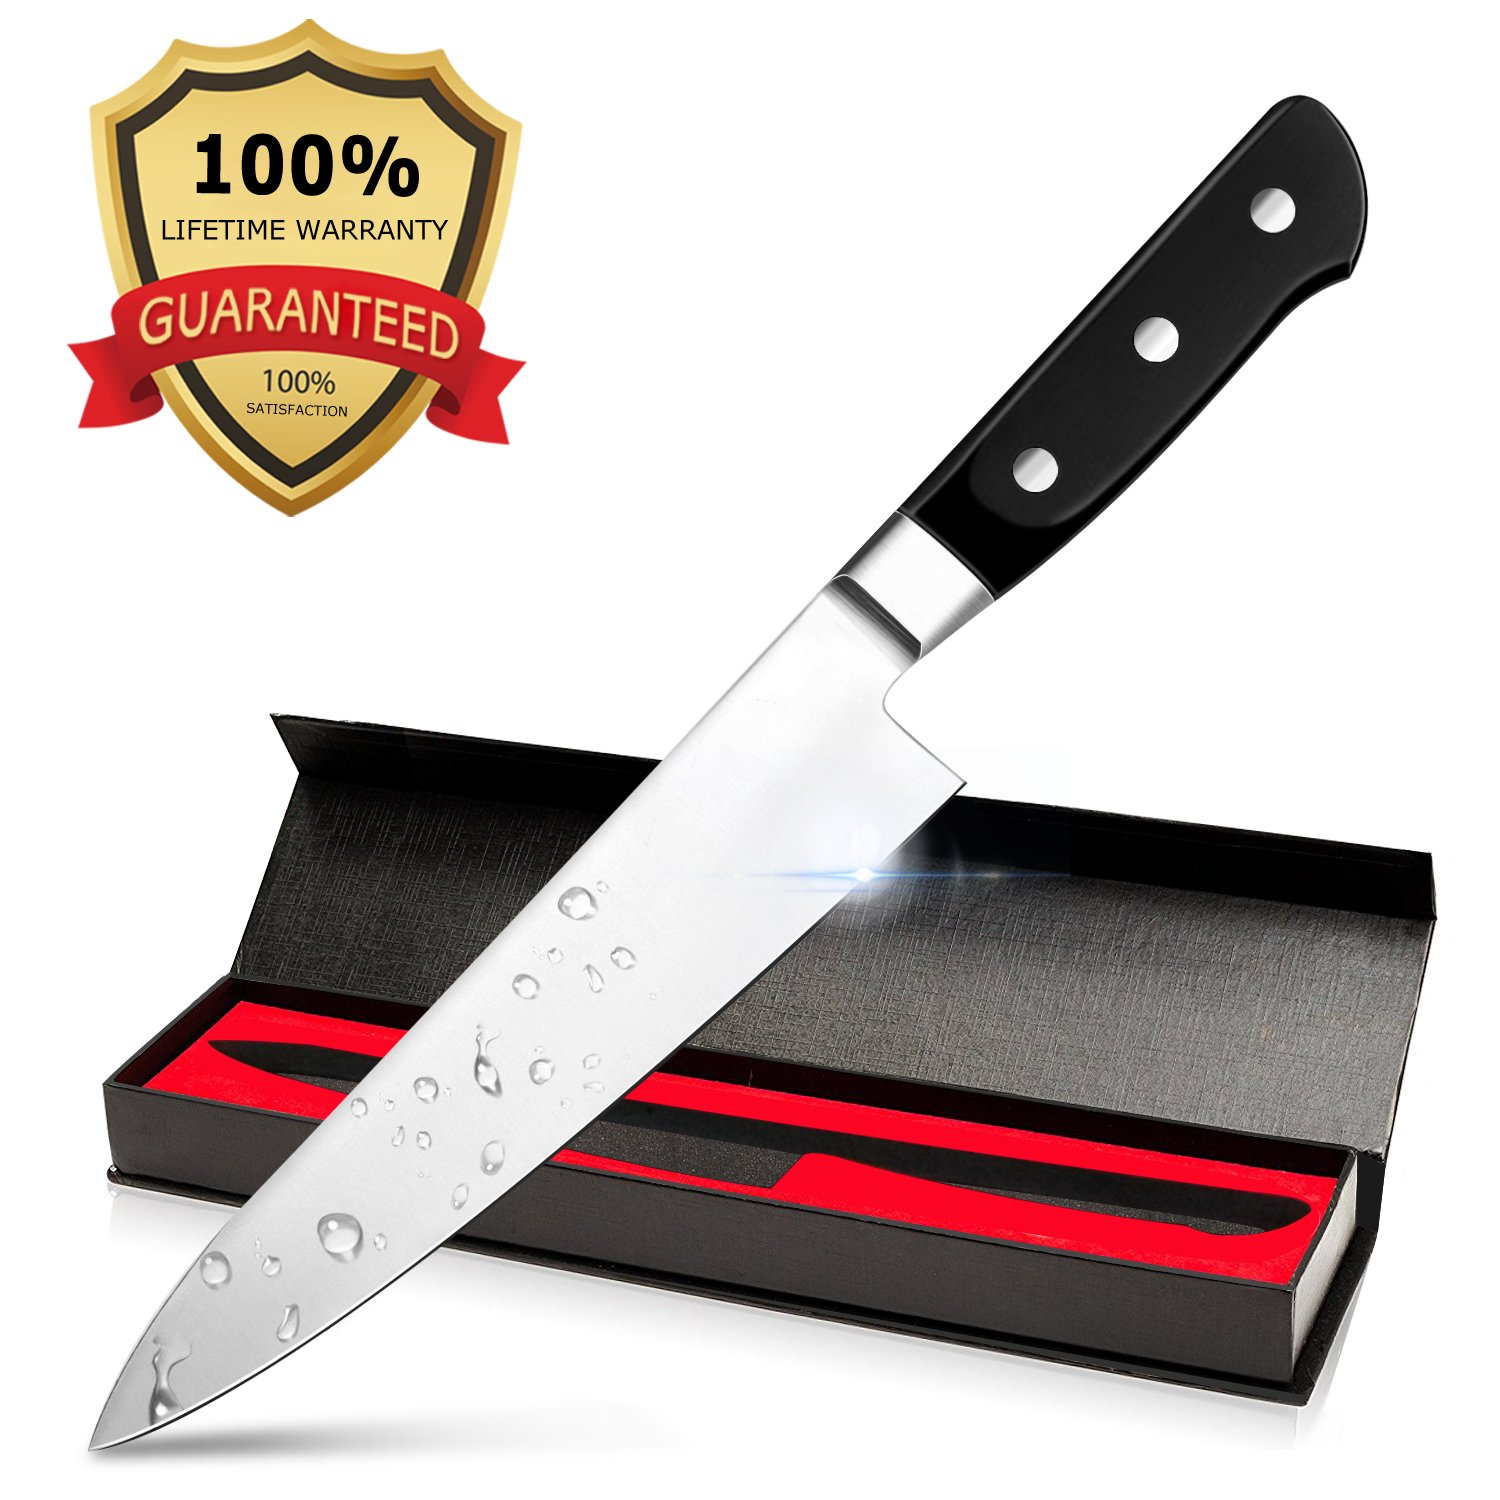 Bodyguard 8 Inch Chef's Knife - High Carbon Stainless Steel Sharp Blade Balanced Comfortable Handle with Gift Case Multipurpose Kitchen Knife for Home and Restaurant by Bodyguard